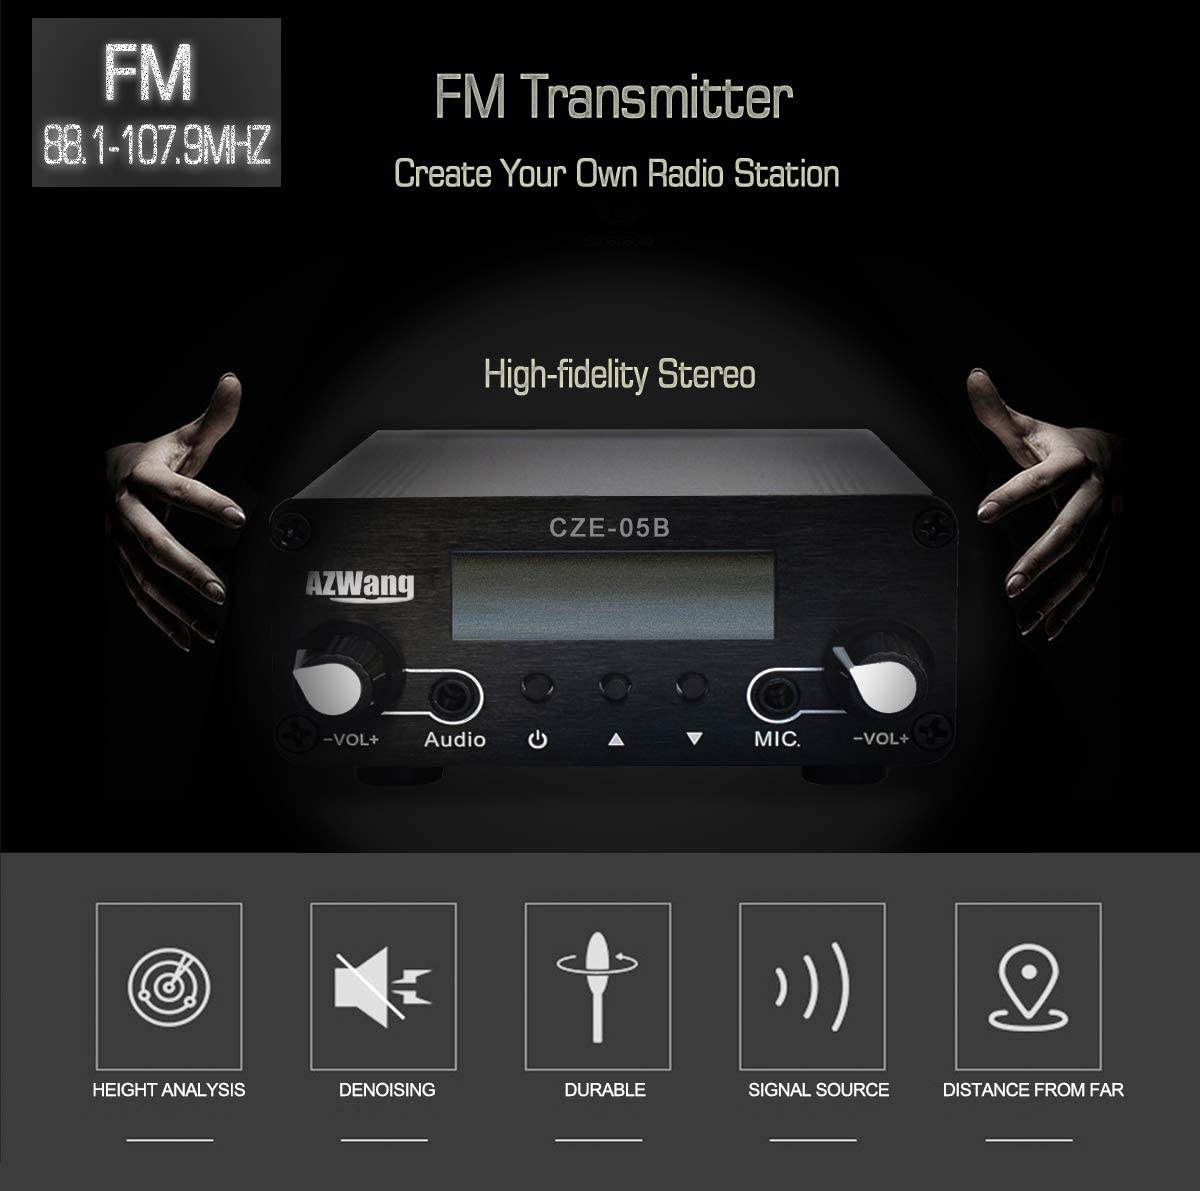 AZWang Long Range FM Transmitter with Antenna,Built-in PLL,3.5mm AUX Input Mini Radio Station System for Drive-in Church Supermarket School Car Theater Conference Factory Personal Radio